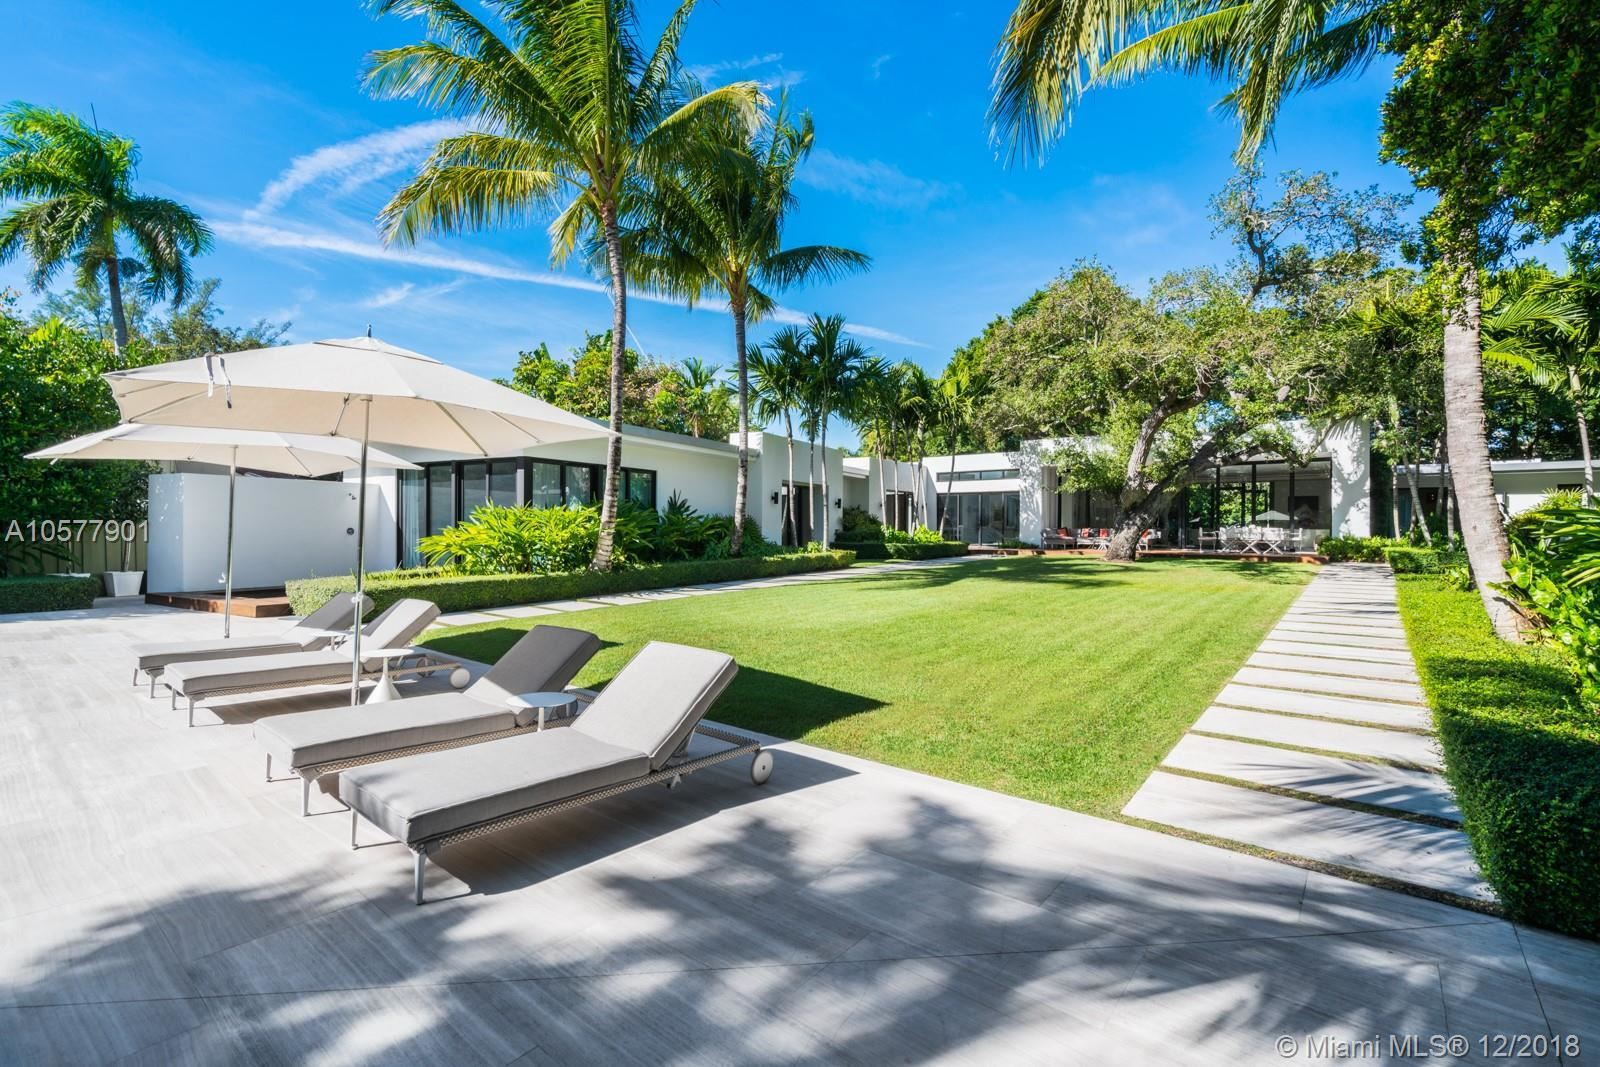 Photo 31 of Listing MLS a10577901 in 5045 Lakeview Drive Miami Beach FL 33140